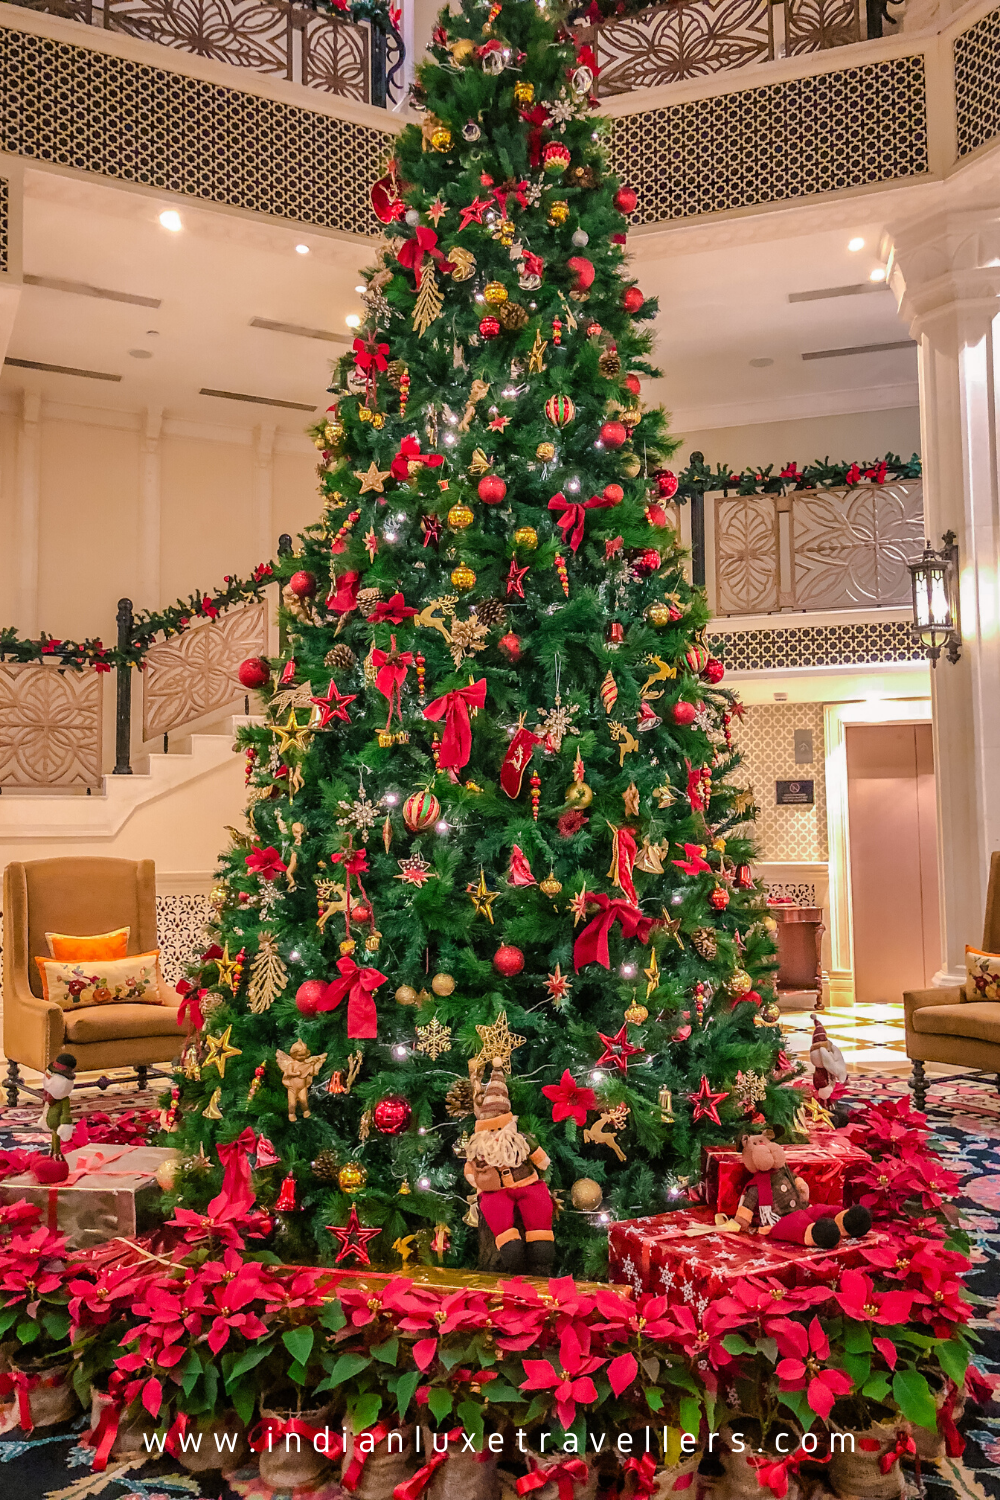 Christmas Tree Decor At Luxury Hotels In 2020 Luxury Hotel Christmas Tree Holiday Decor